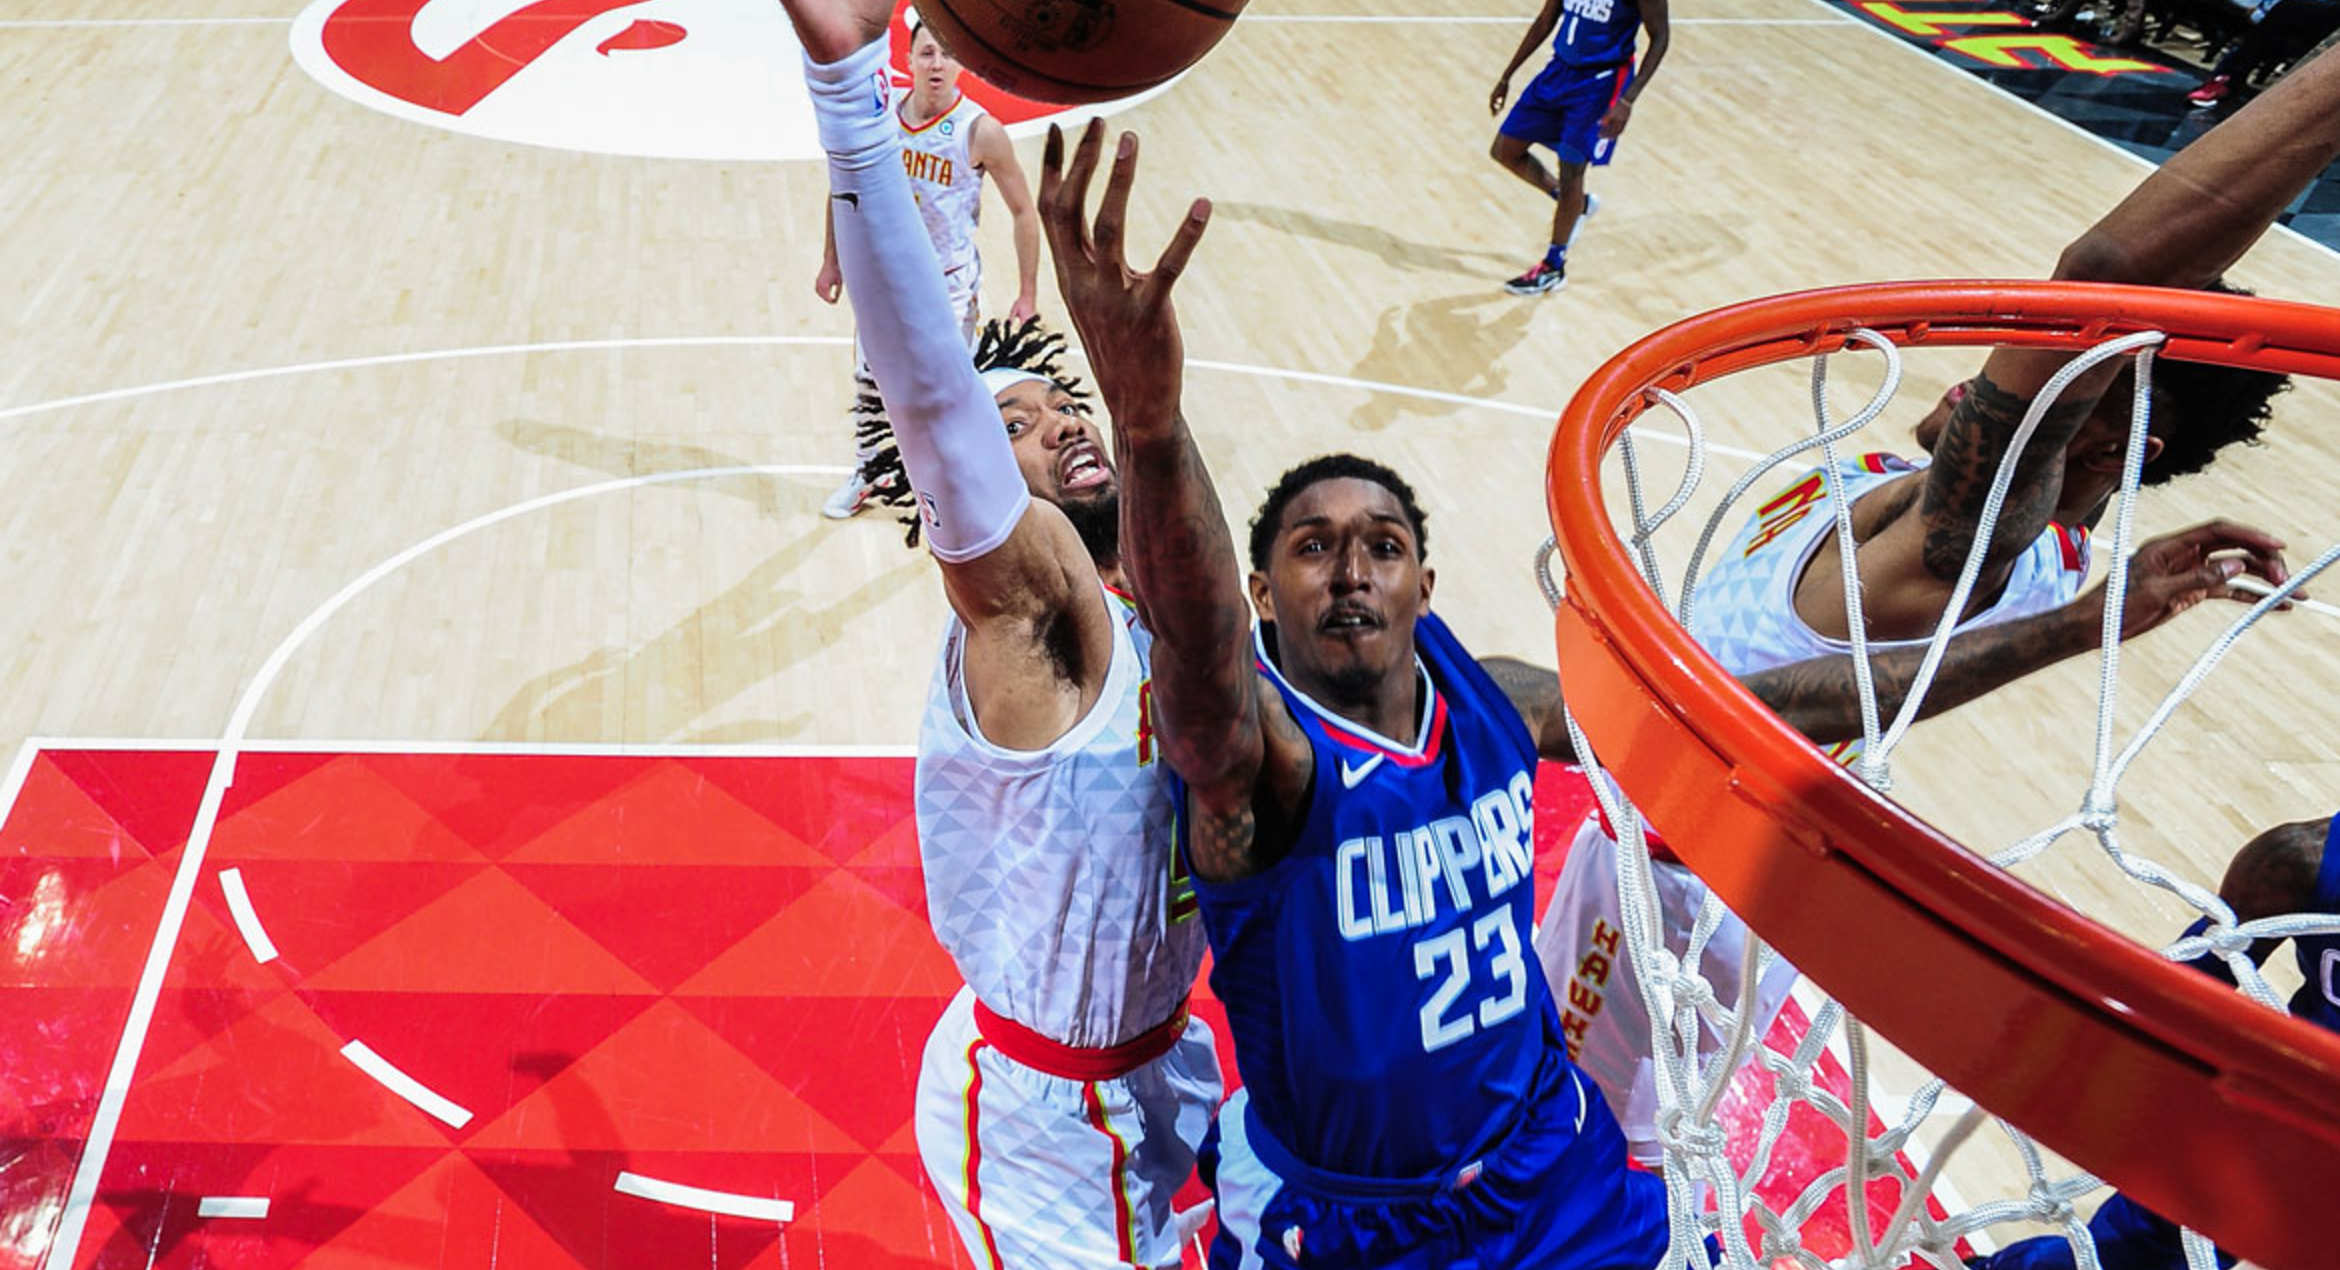 Game Preview: Clippers vs. Hawks